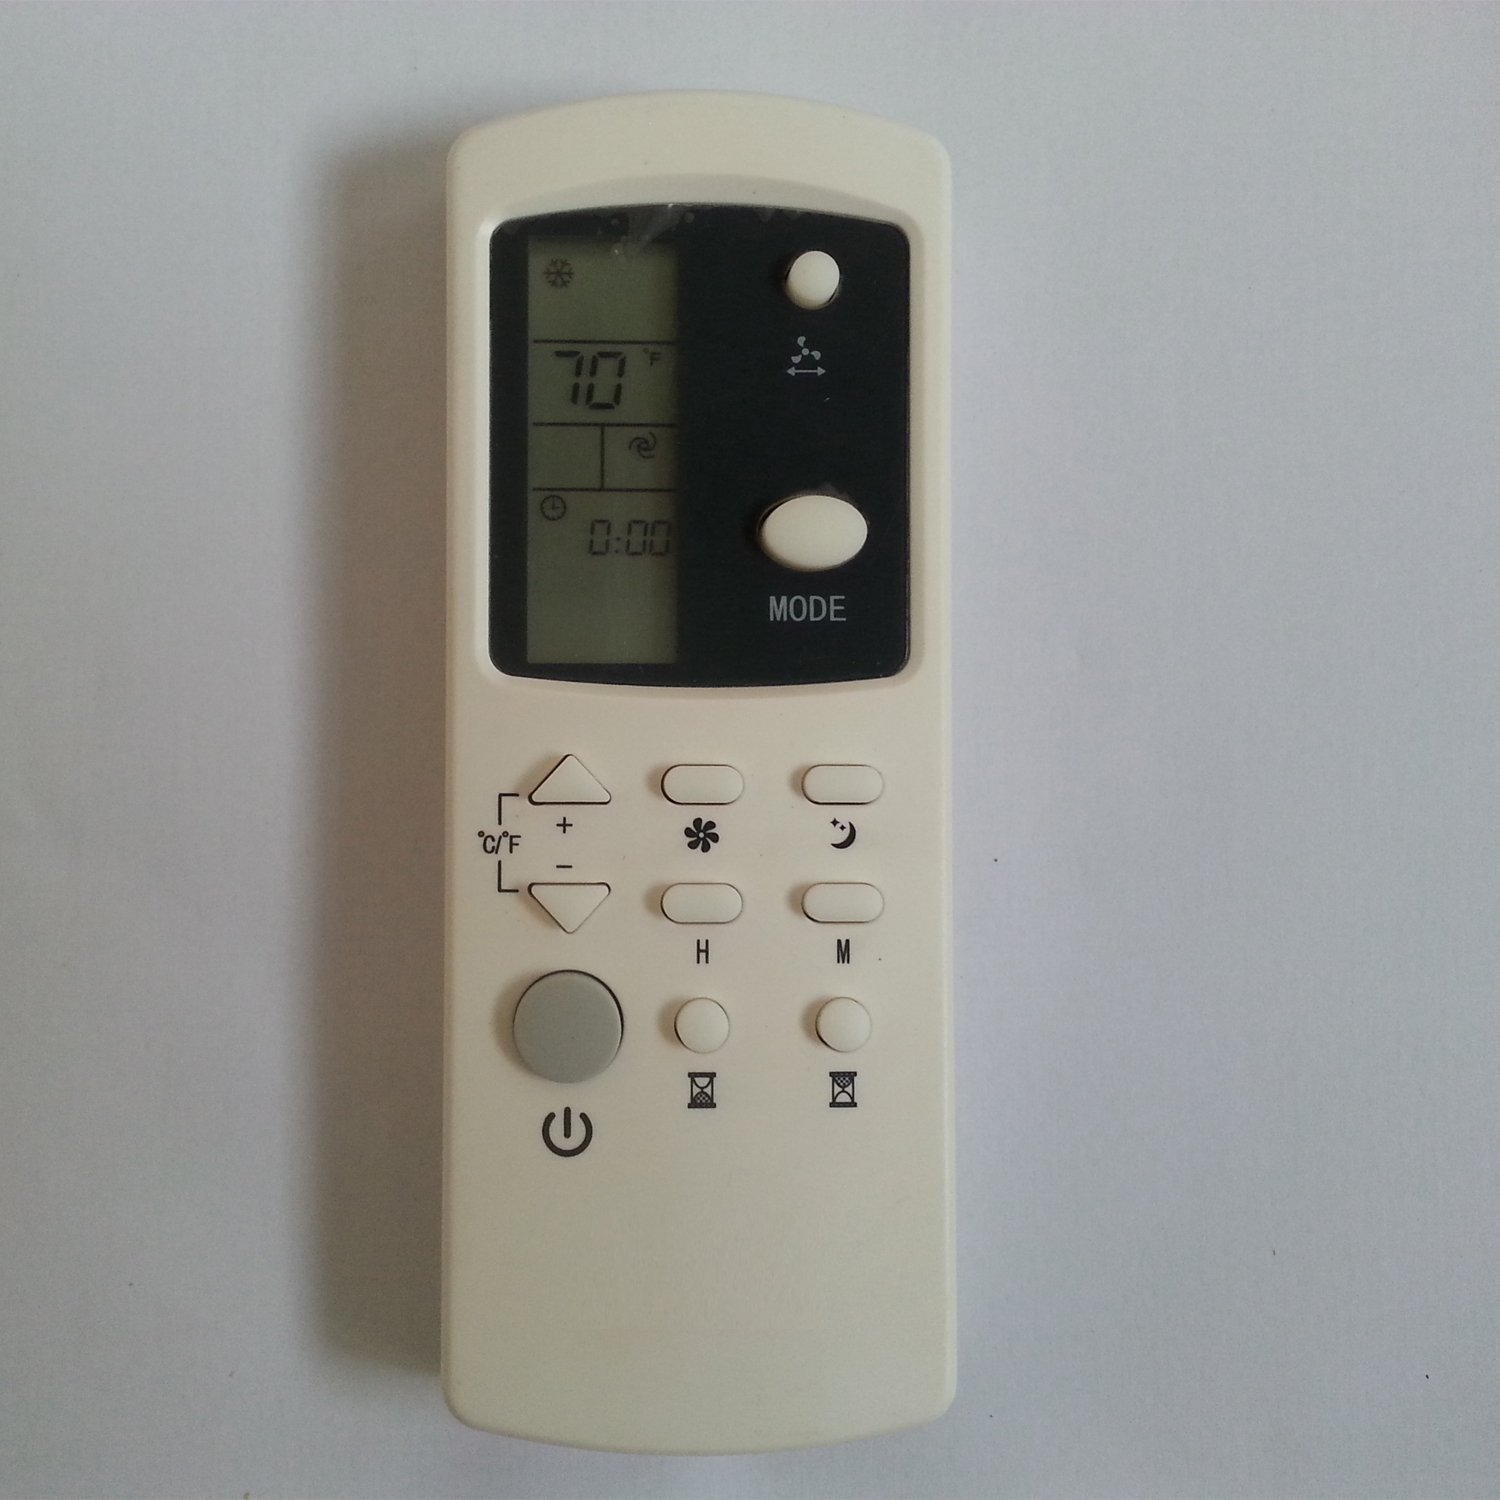 Galanz Air Conditioner Remote Control Manual